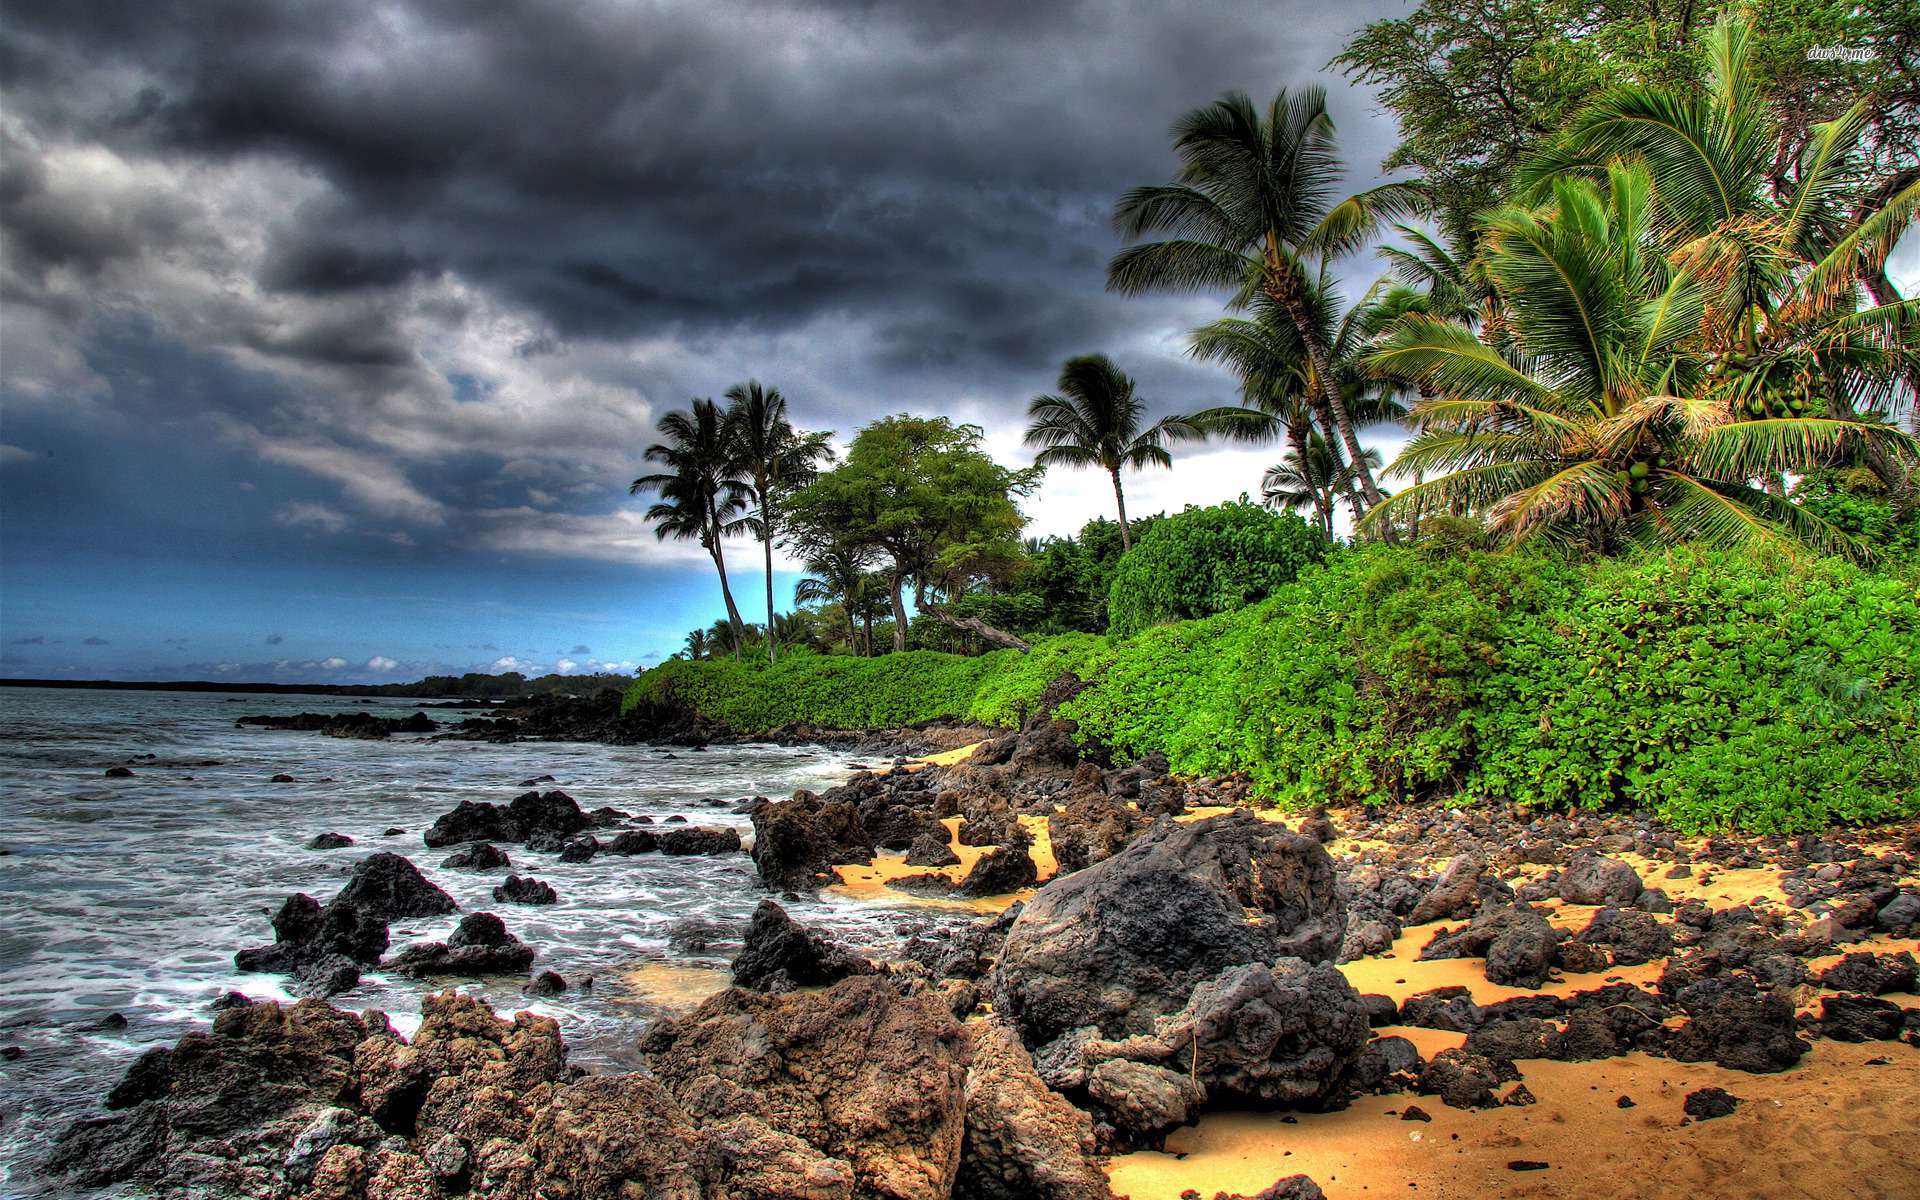 Hawaii Beach Wallpaper Hd Free: Maui Hawaii Desktop Wallpaper